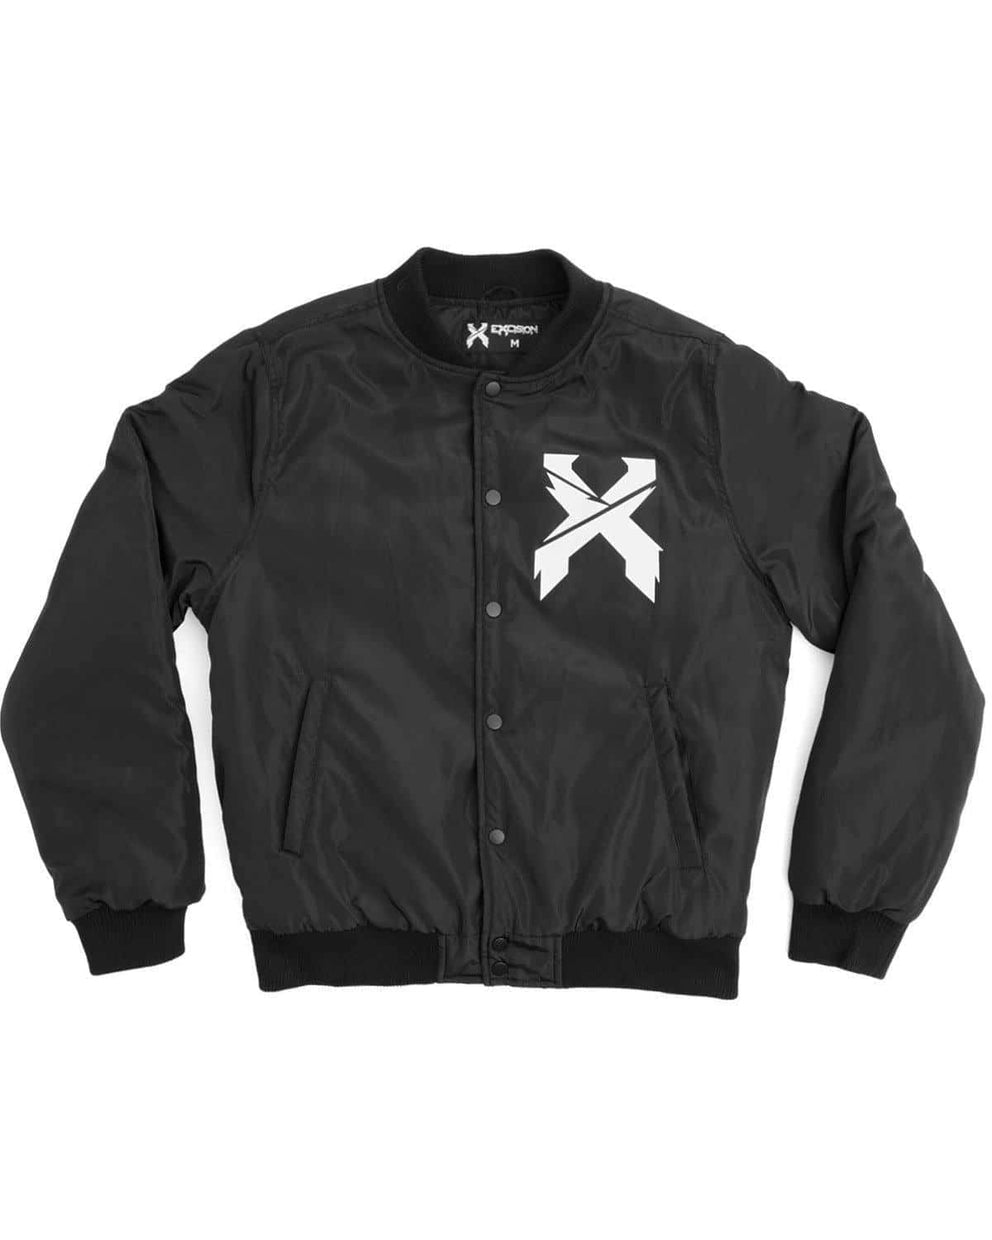 Excision 'Headbanger' Bomber Jacket